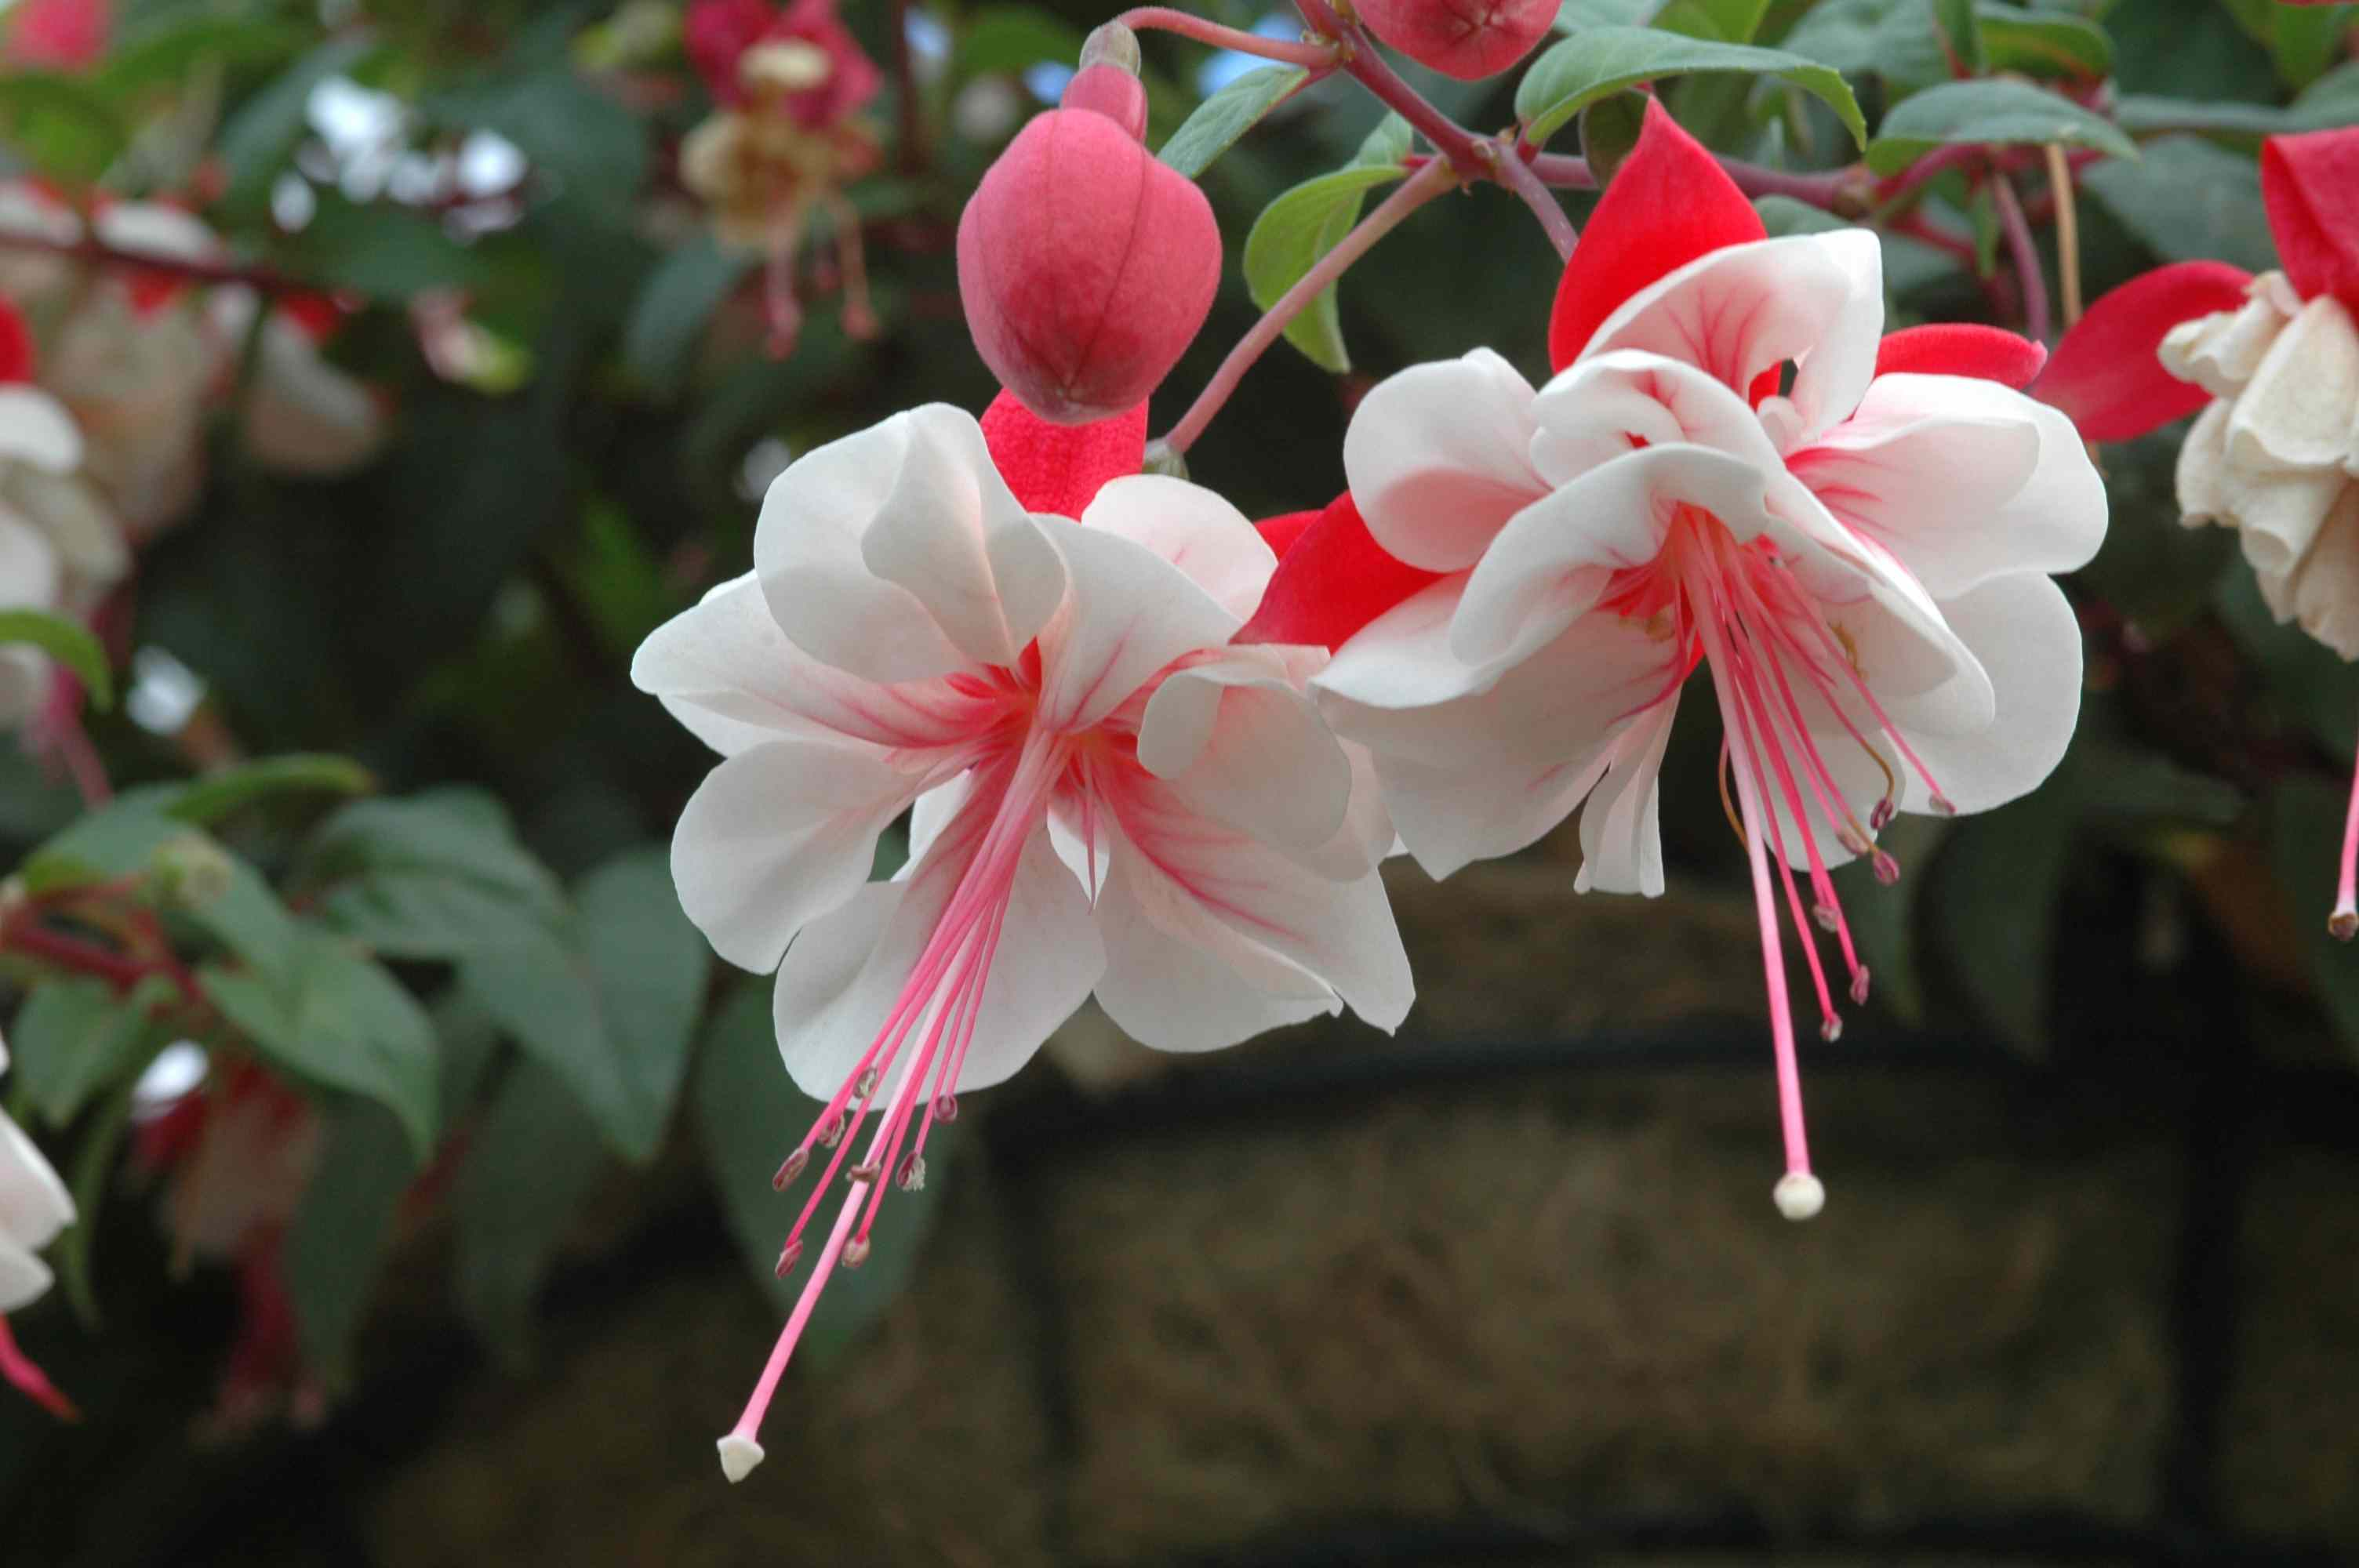 'Swingtime' fuchsia with white and red blooms